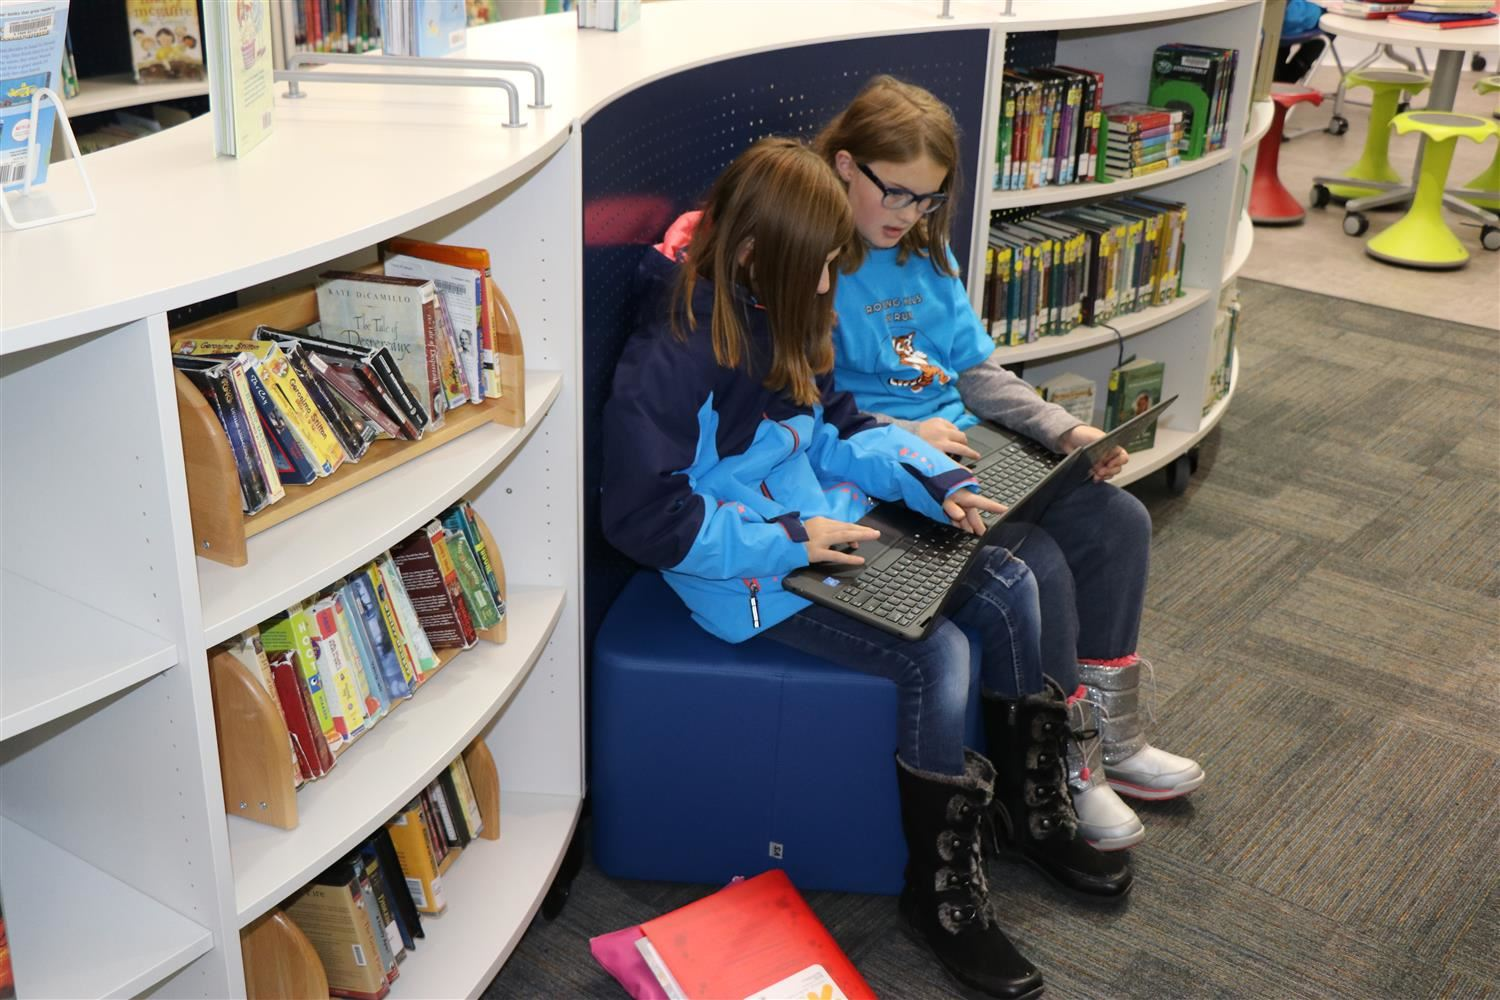 Students work on laptops in a nook inside a bookshelf in newly renovated innovation space.